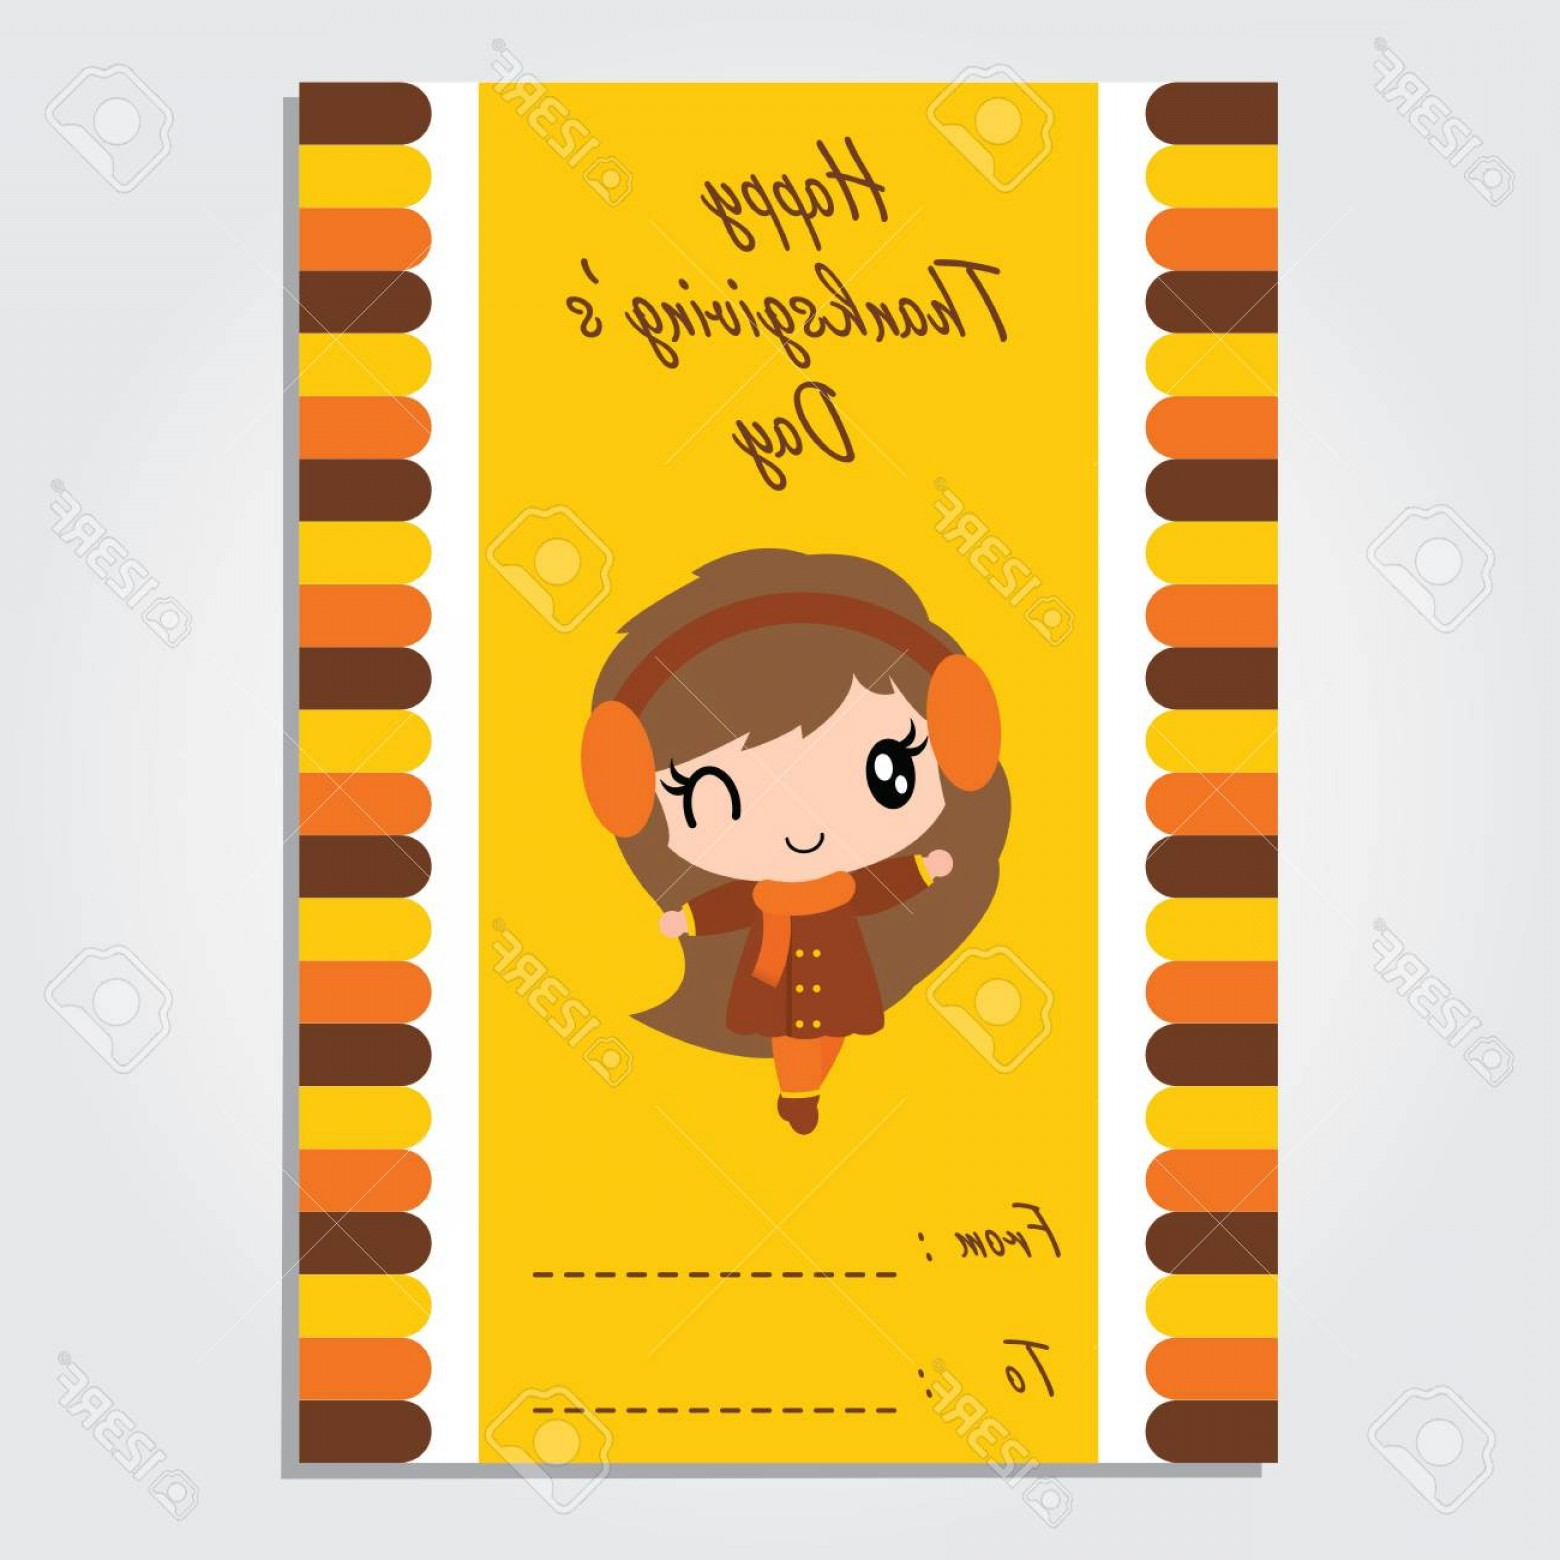 Thanksgiving Border Vector: Photostock Vector Cute Girl Is Winking On Colorful Border Vector Cartoon Illustration For Thanksgiving S Day Card Desi